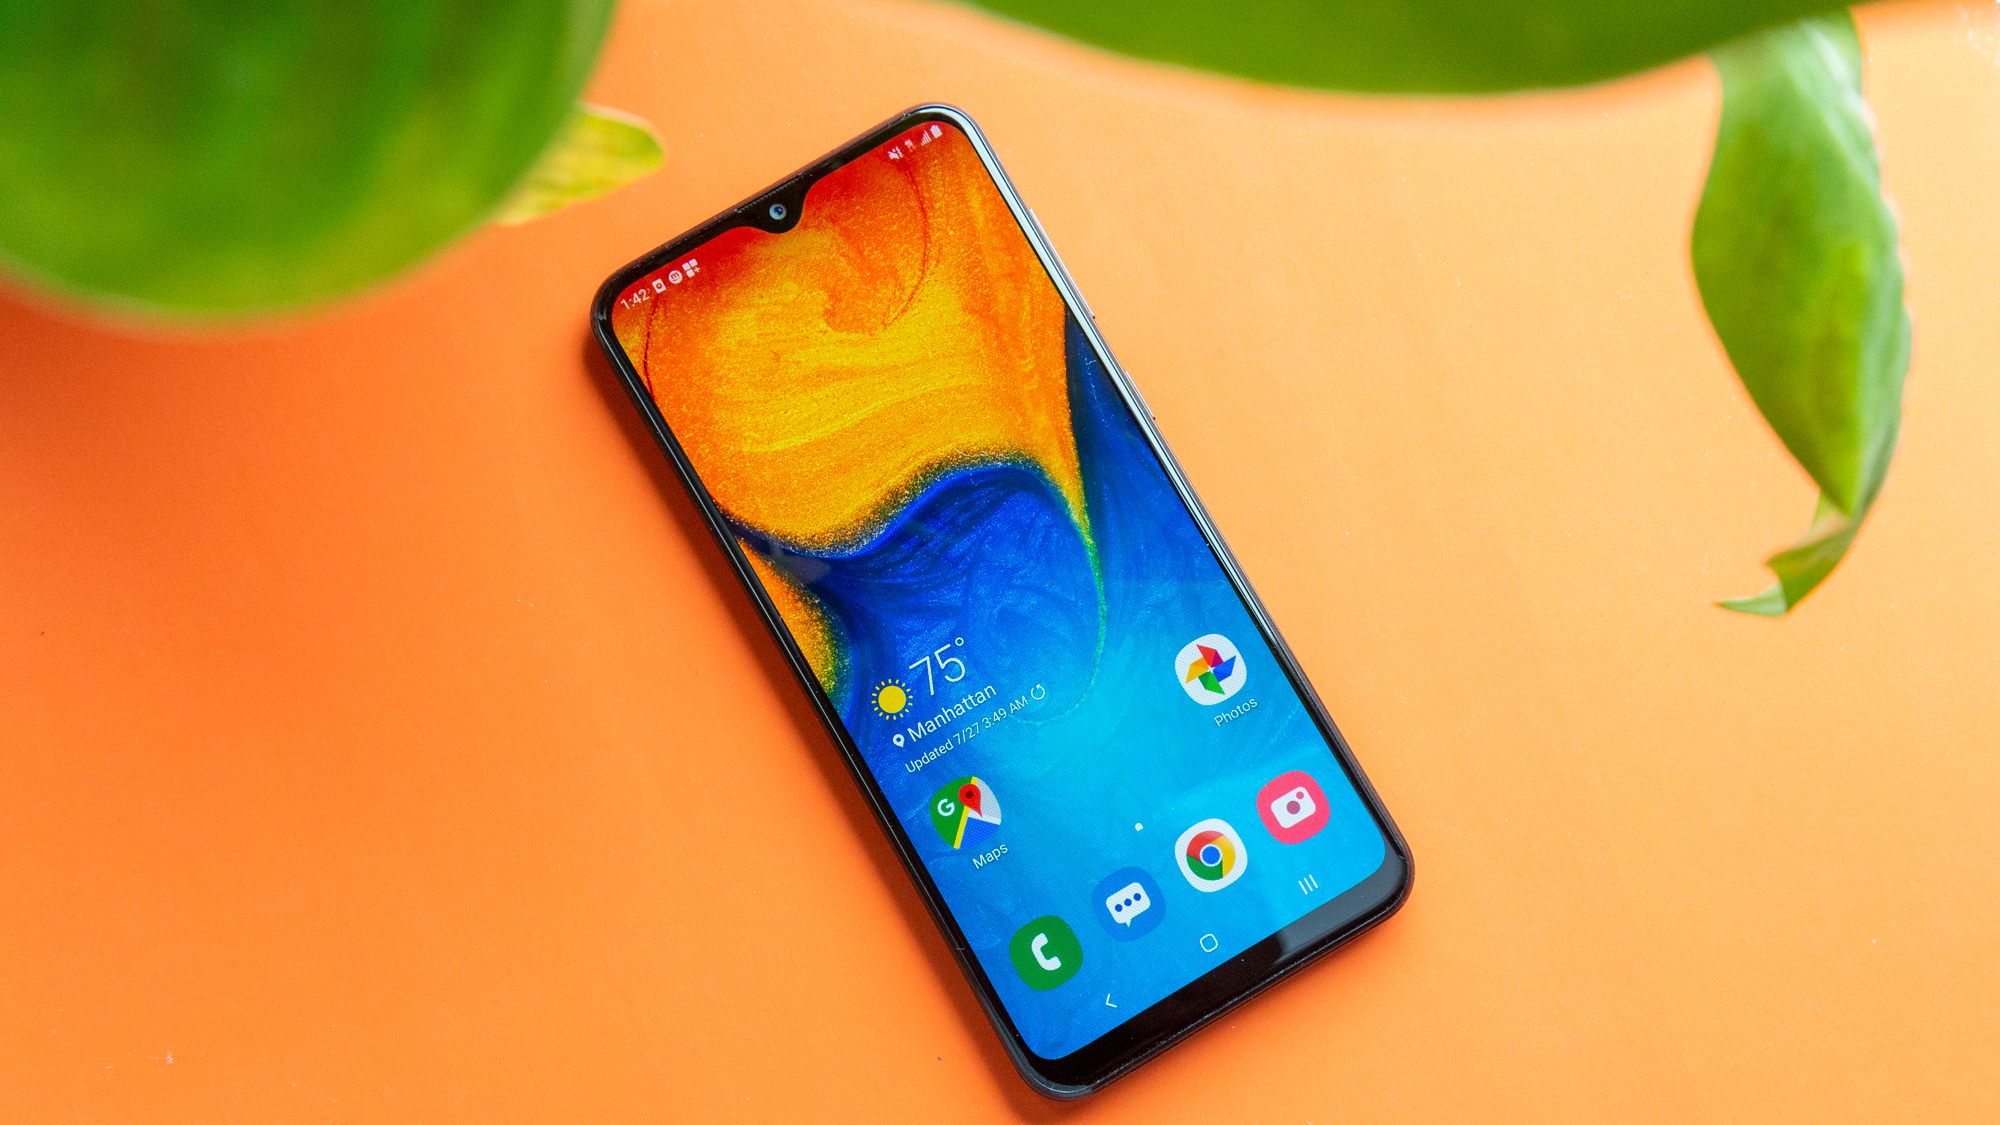 Samsung Galaxy A20 - Now Getting the Android 11 with June 2021 Security Patch